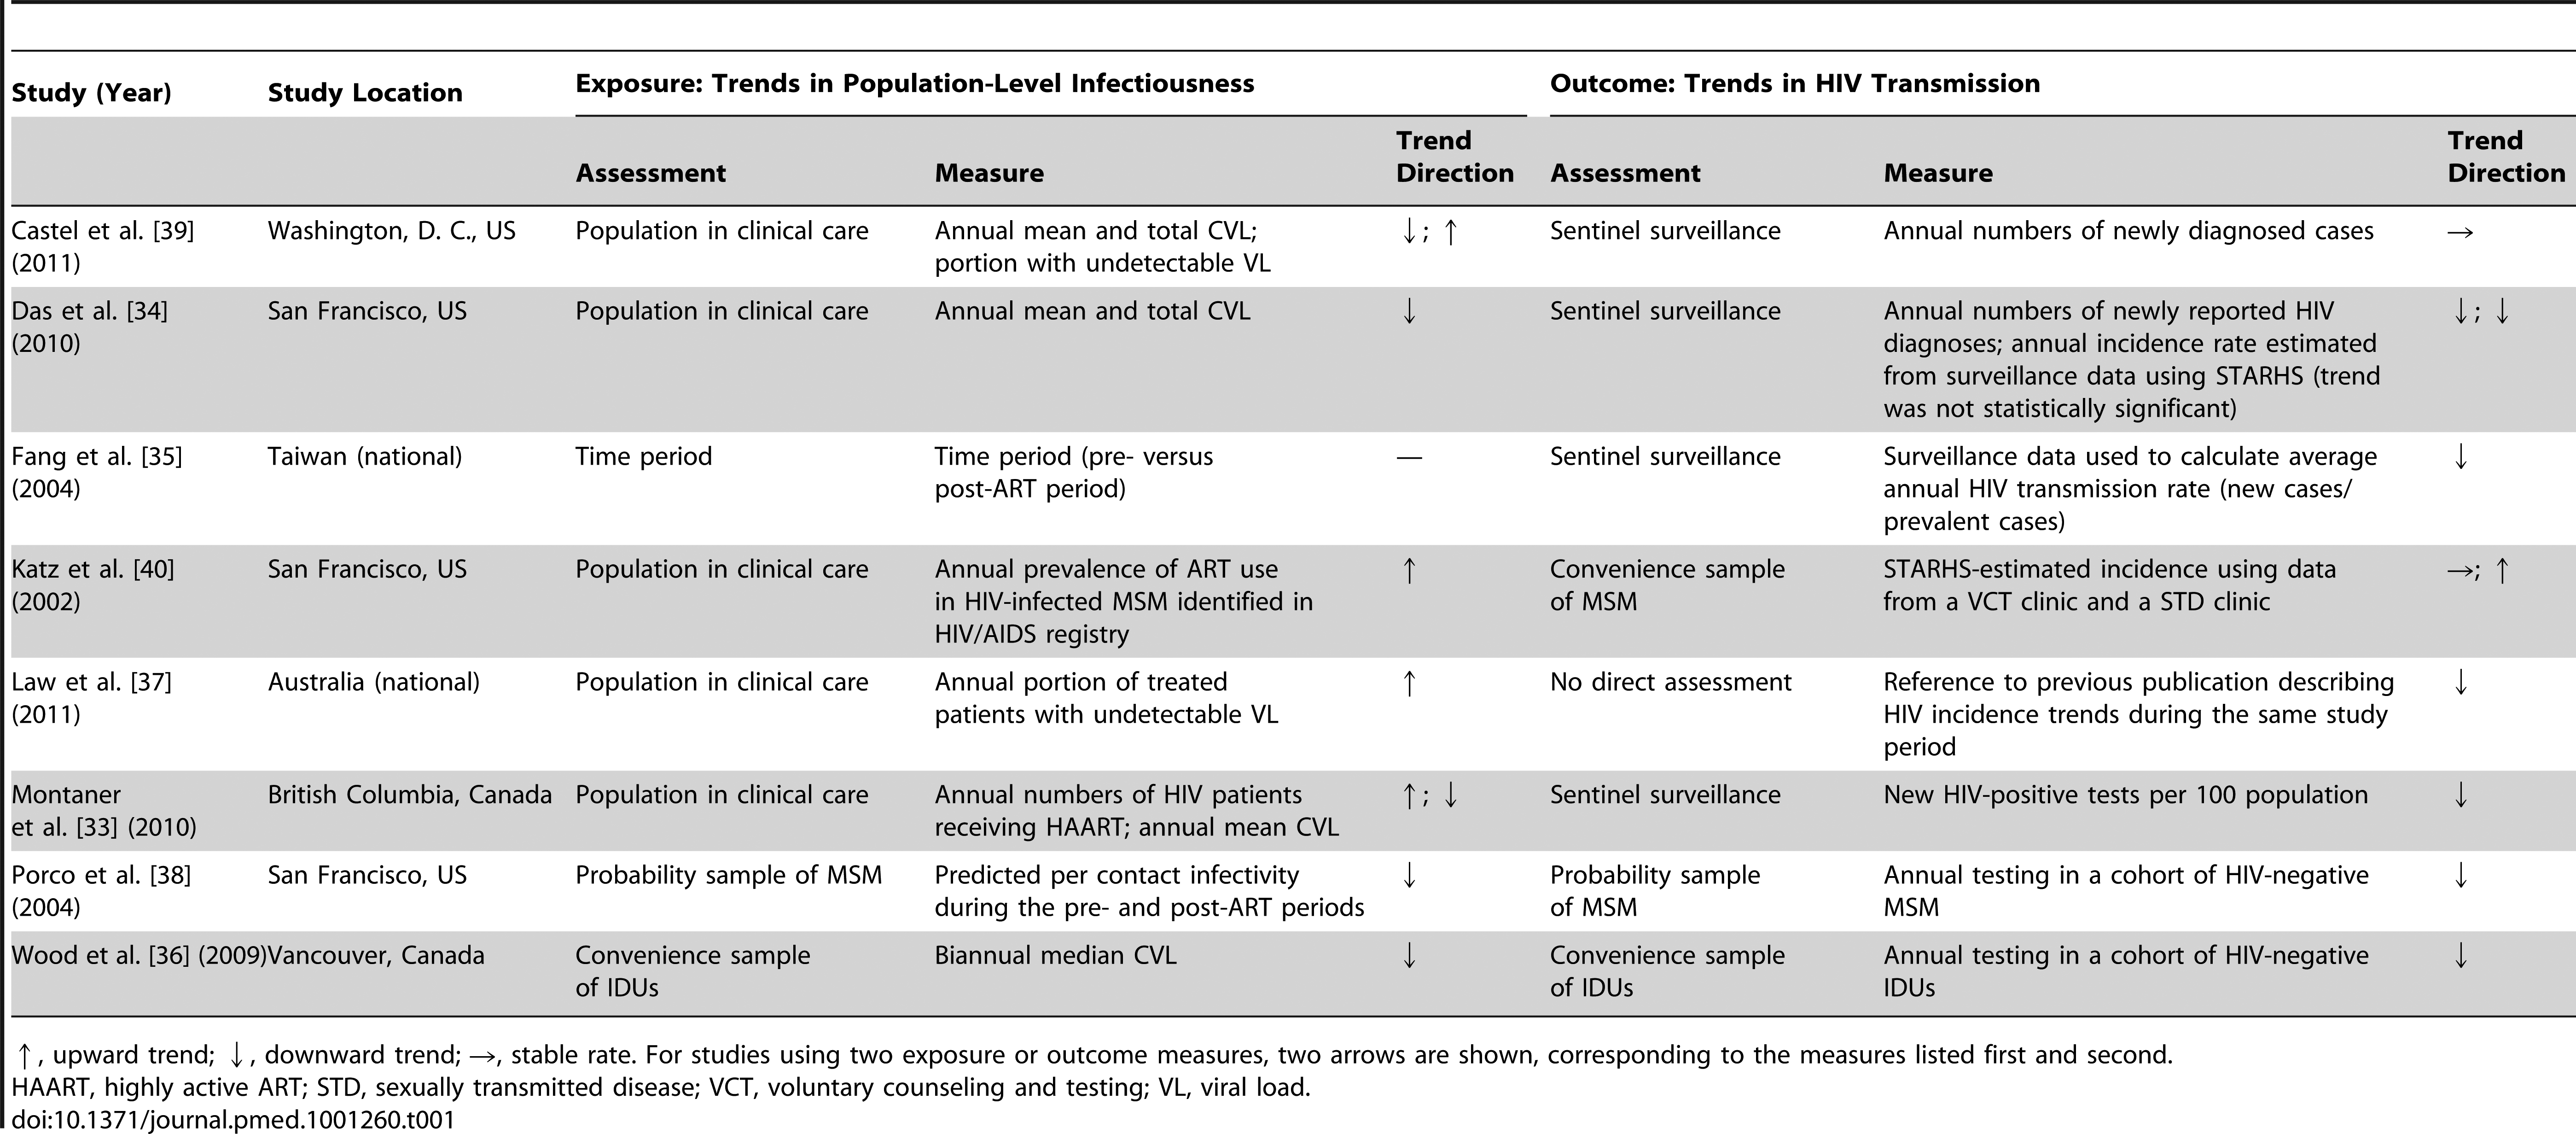 Summary of exposure and outcome measures in studies using ecological measures to assess population-level effects of ART on HIV transmission.